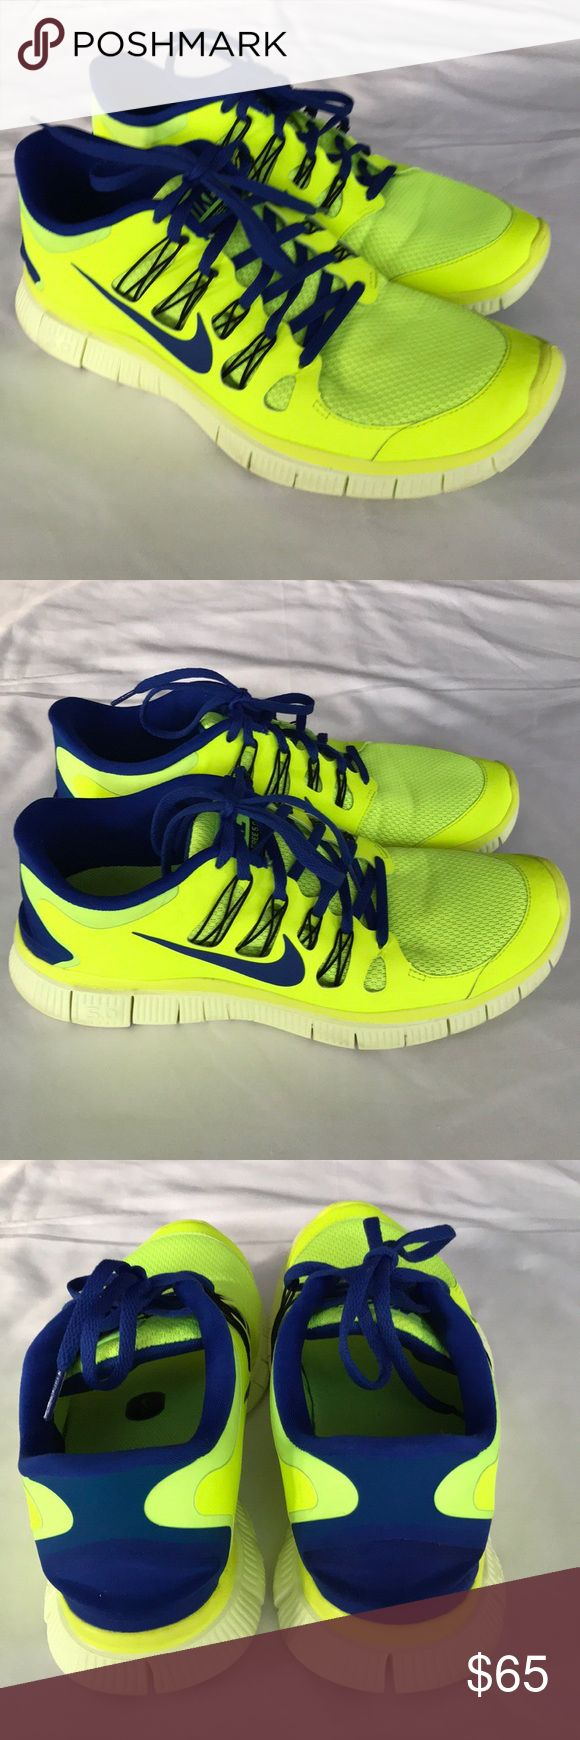 Nike + Free 5.0 Athletic Running Shoe Men Size 12 Nike + Free 5.0 Athletic Running Shoe Men Size 12. Worn once on outdoor trail. The sole shows some wear but rest of the shoe looks like new. Neon yellow with royal blue and black accents. Nike Shoes Athlet